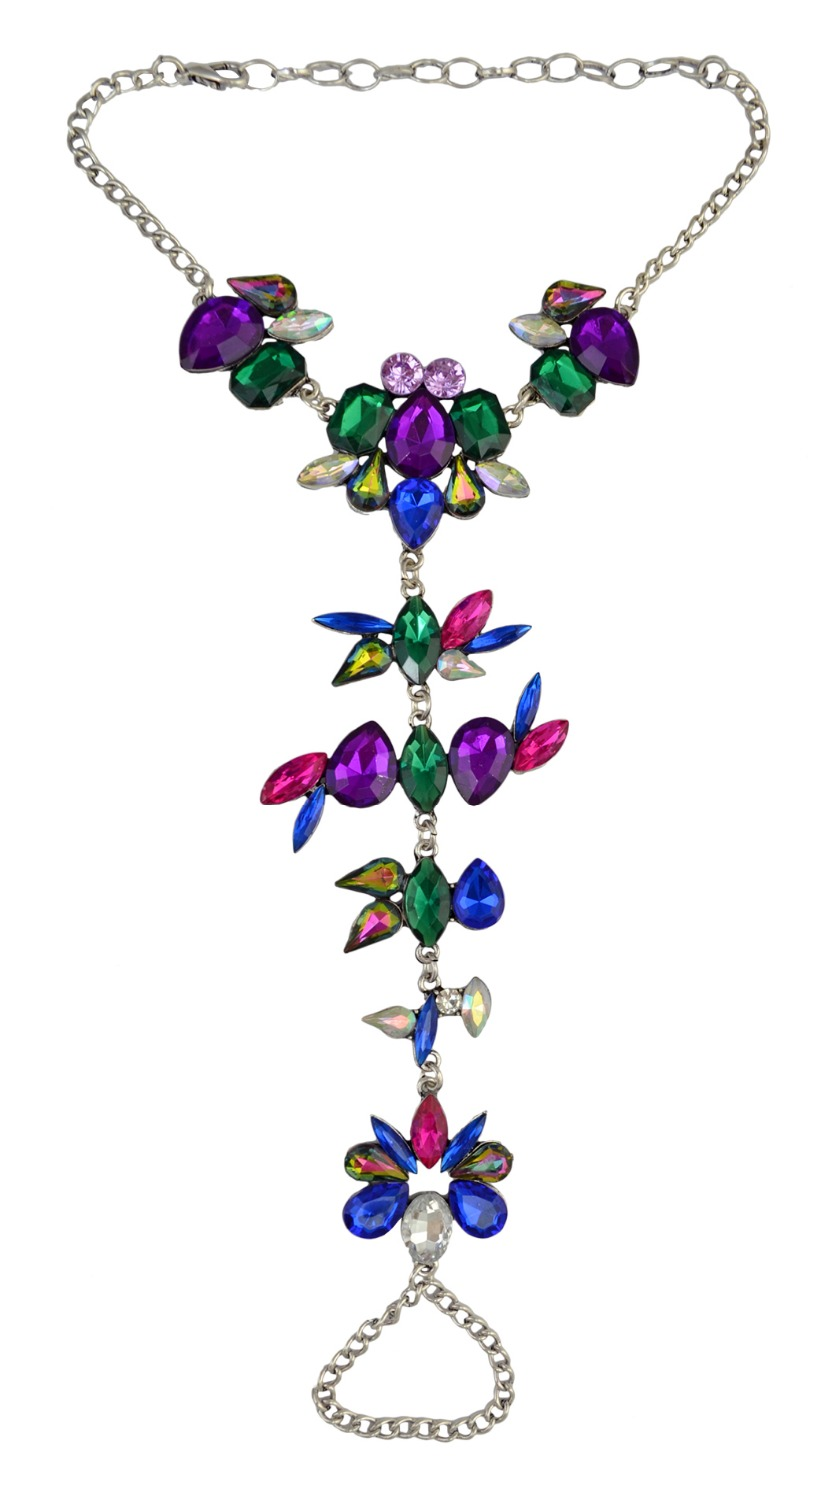 New Arrival 3 Colors Beach Boho Charm Inlay Crystal Rhinestone Flower Shape Summer Anklet For Women